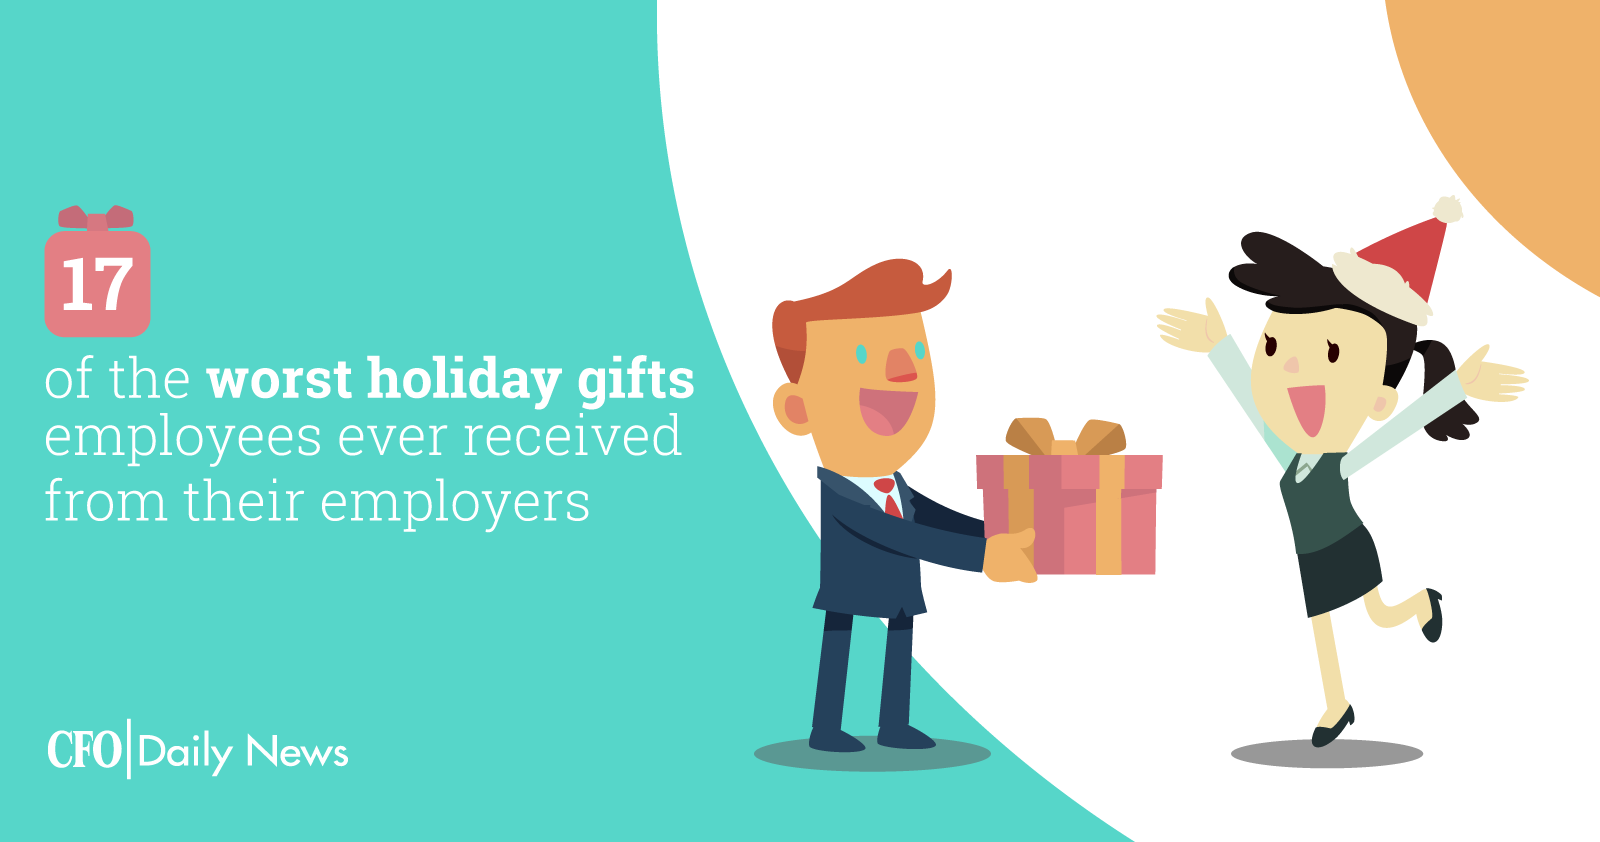 17 worst holiday gifts employees receive from their employers